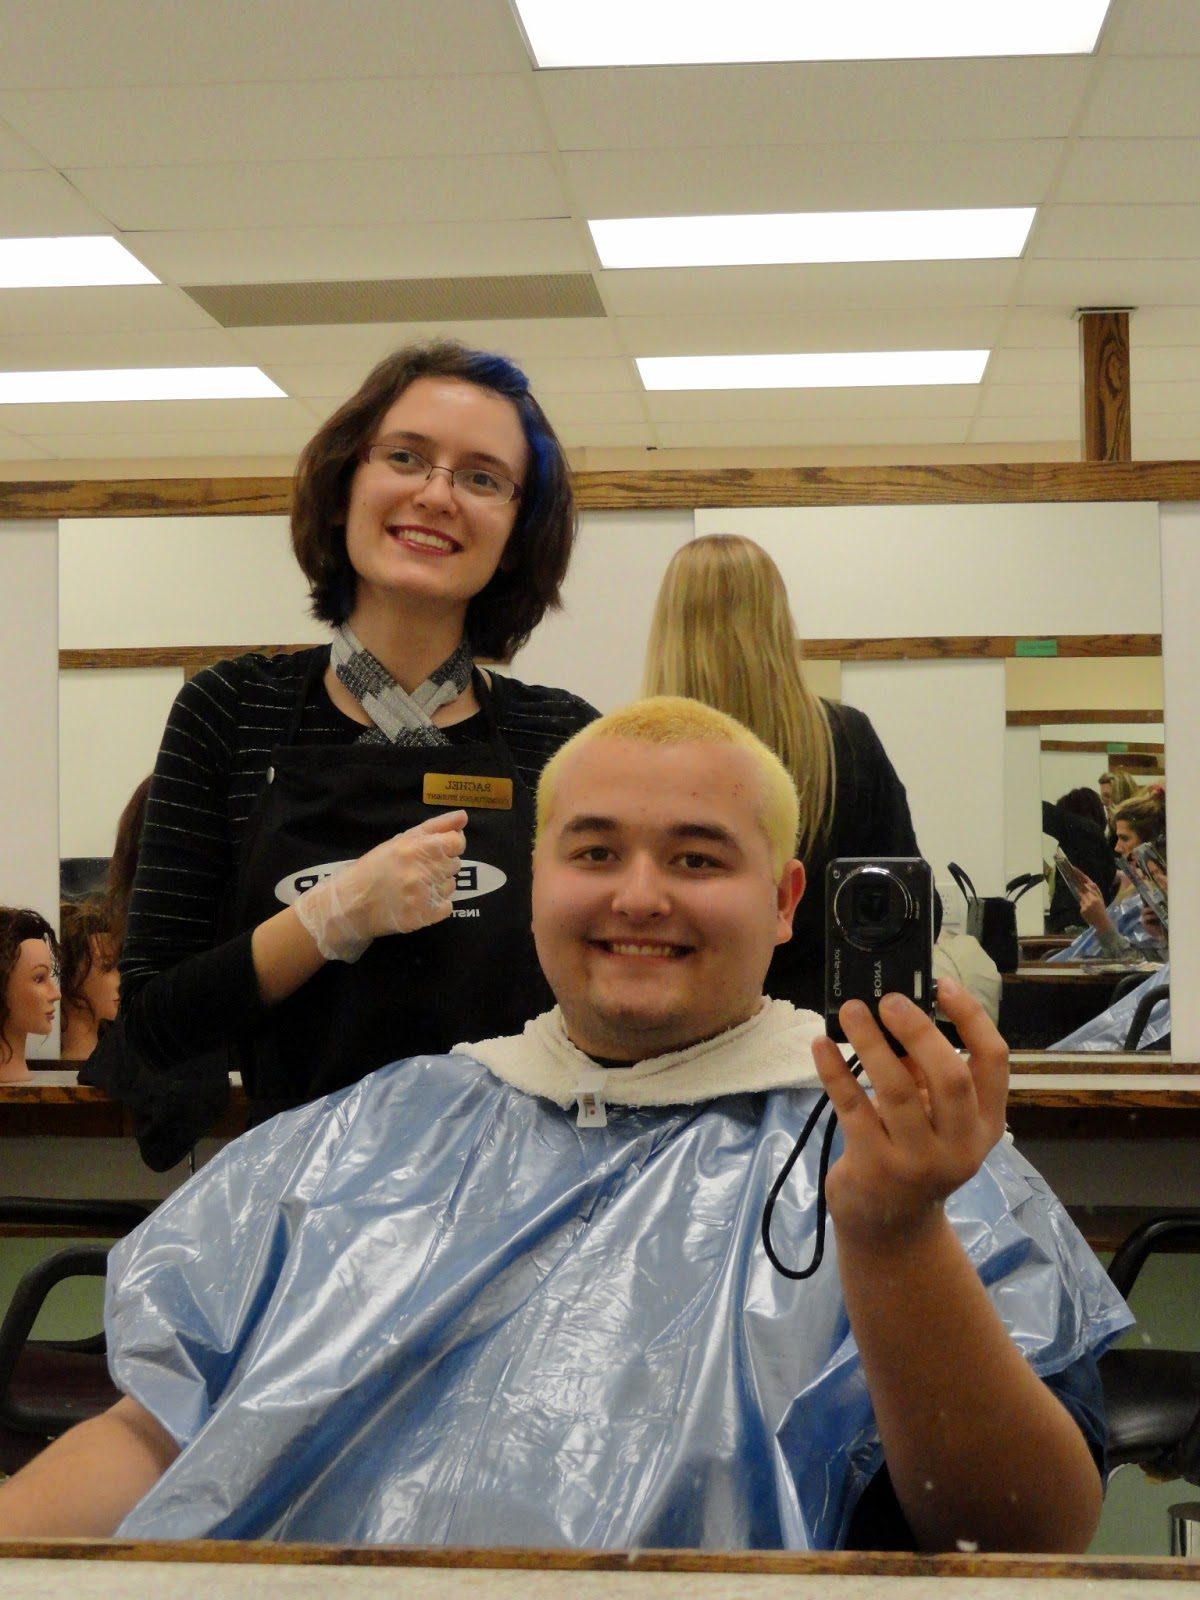 what cosmetology really is Cosmetology has a variety of jobs and career paths to choose from this is a very common concern for almost anyone who is trying to decide what career to go into, and cosmetology is no exception the good news is that there are very few limits to what you can do with a cosmetology license.